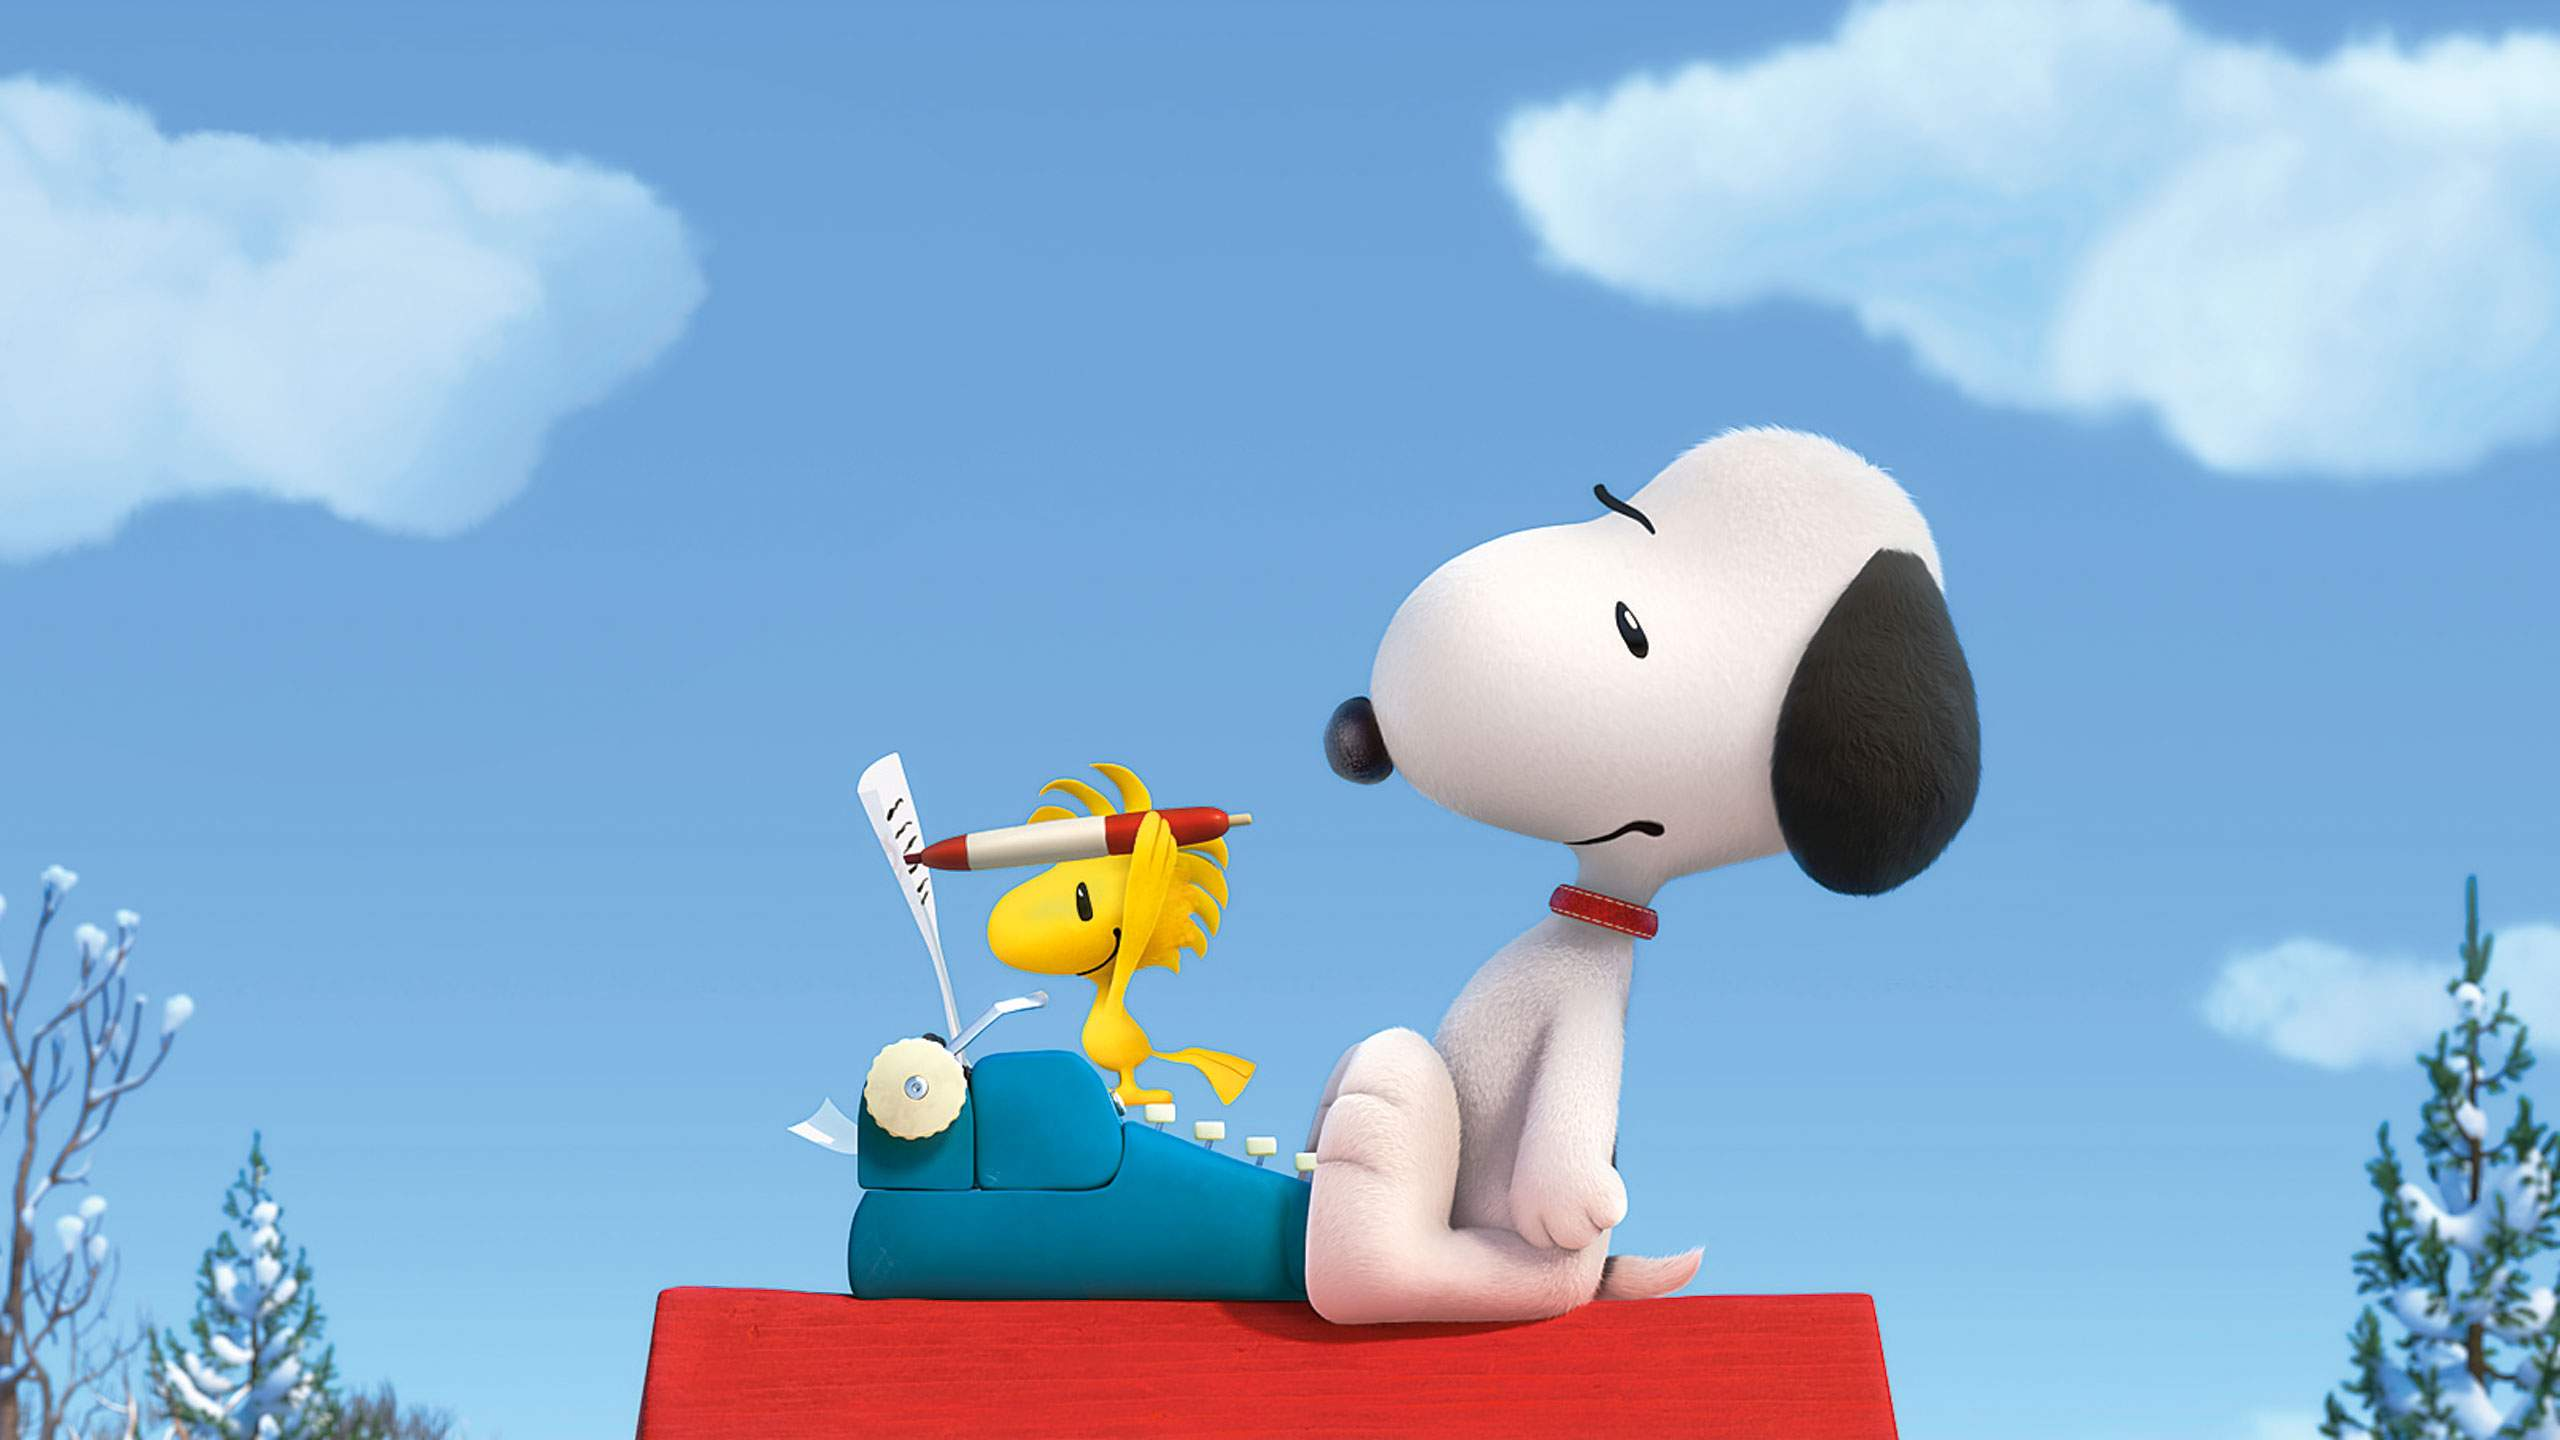 HD Snoopy Wallpapers 2560x1440